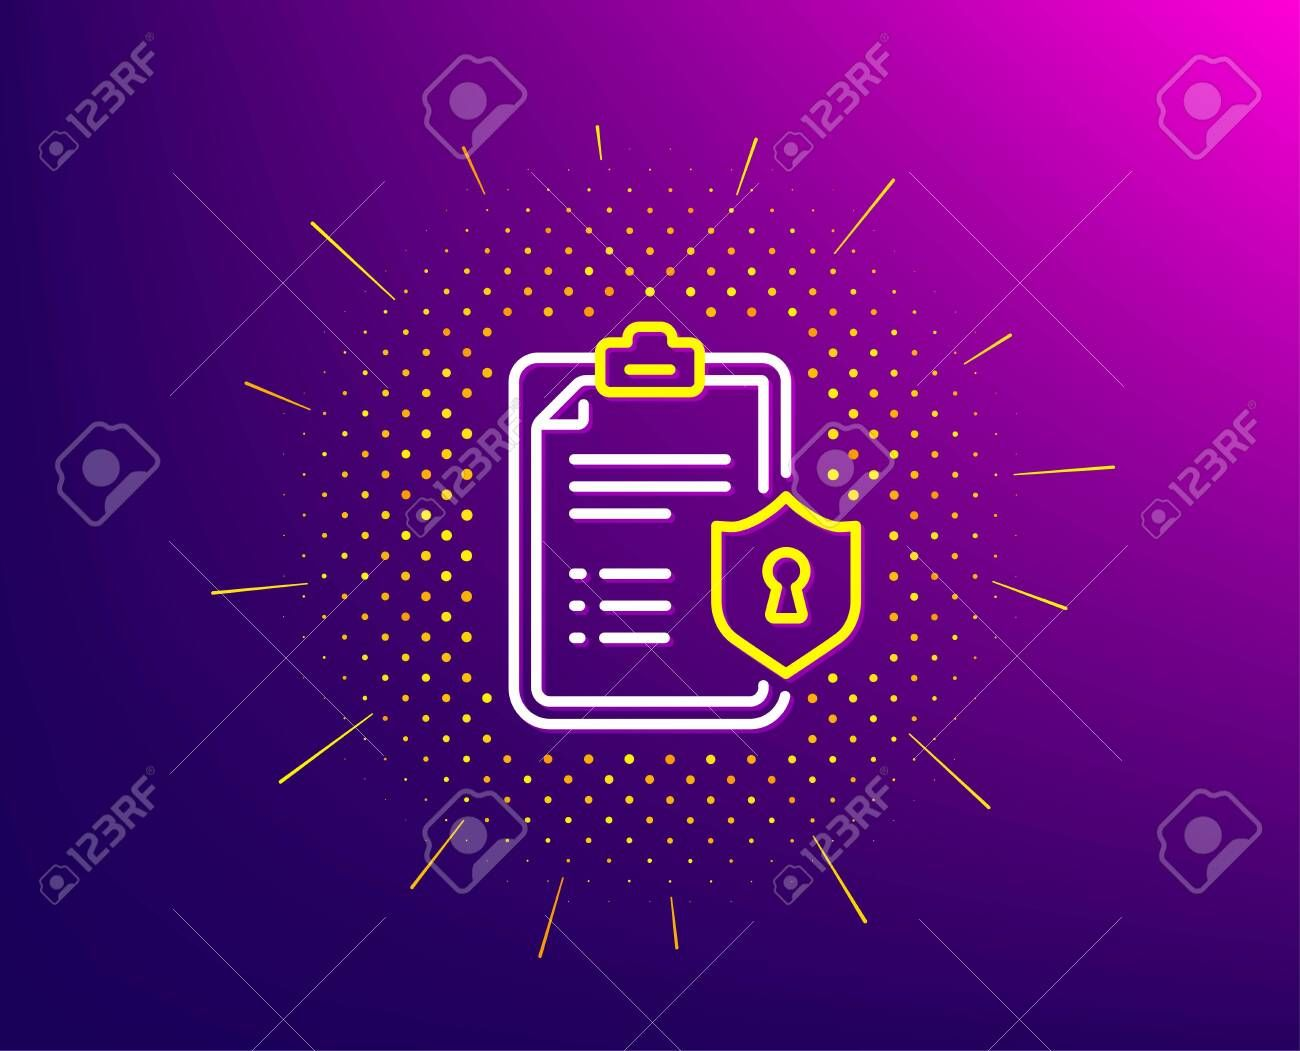 Checklist Line Icon Halftone Pattern Privacy Policy Document Sign Illustration Sponsored Halftone Pattern Icon Checklist Line